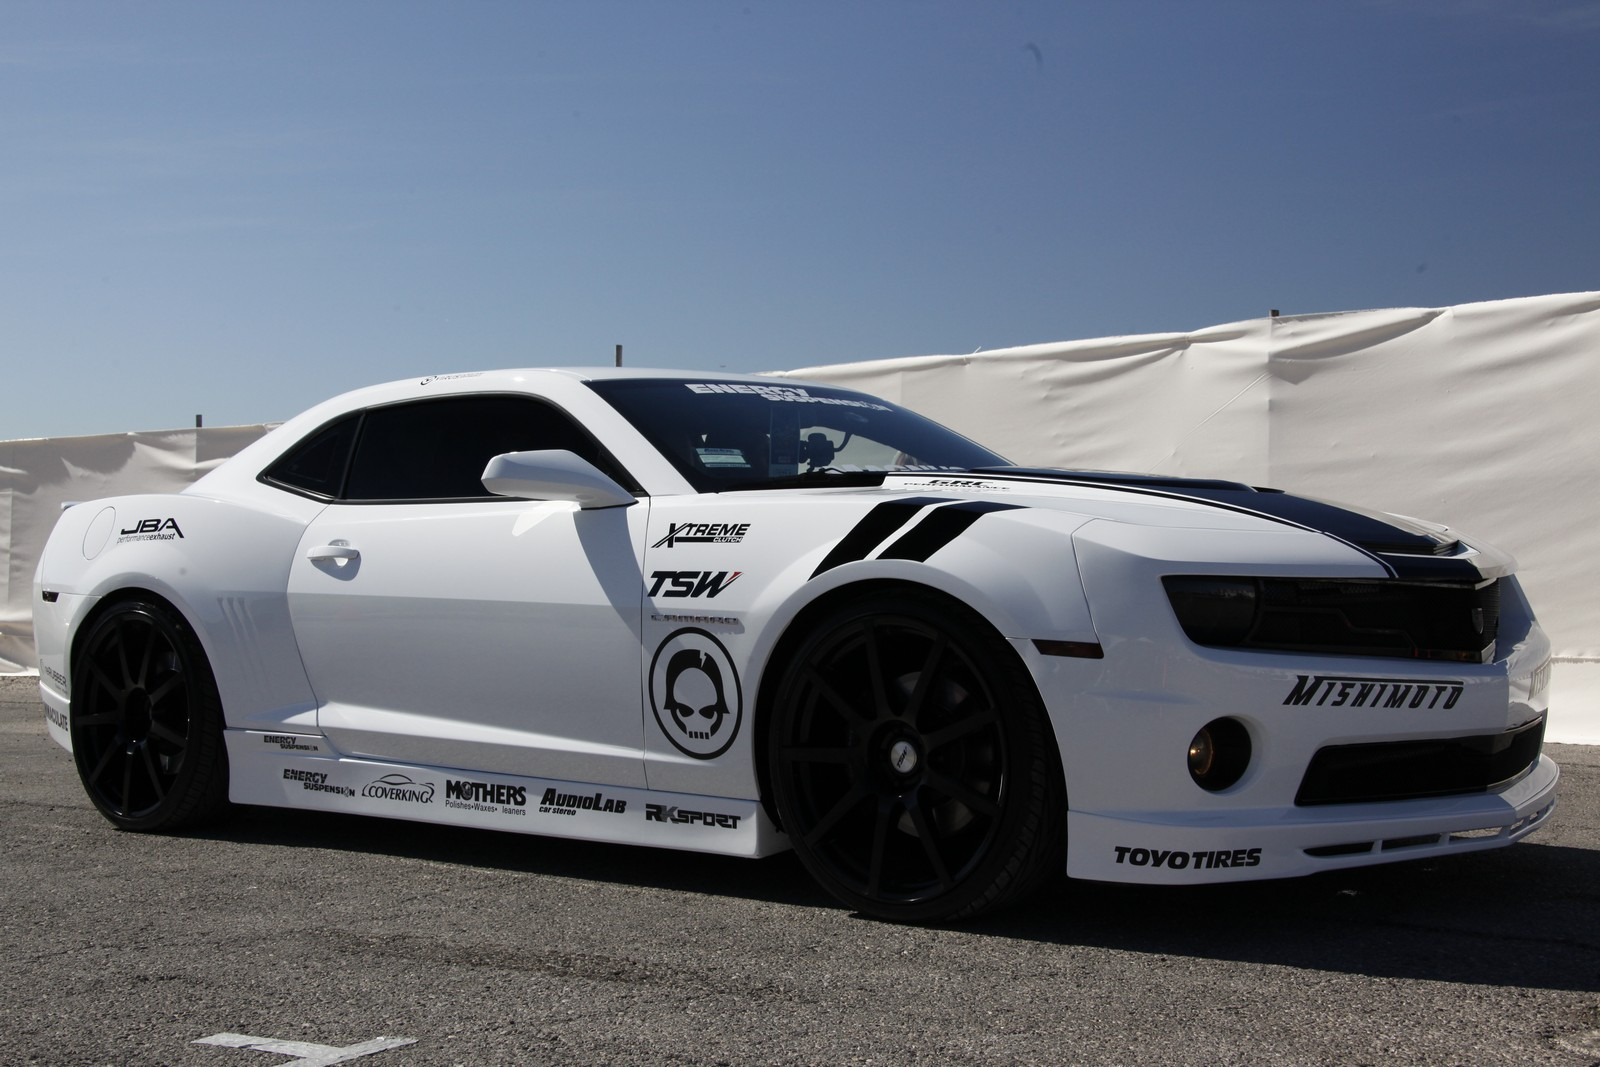 20 Muscle Cars at 2012 SEMA show - Muscle Cars News and Pictures